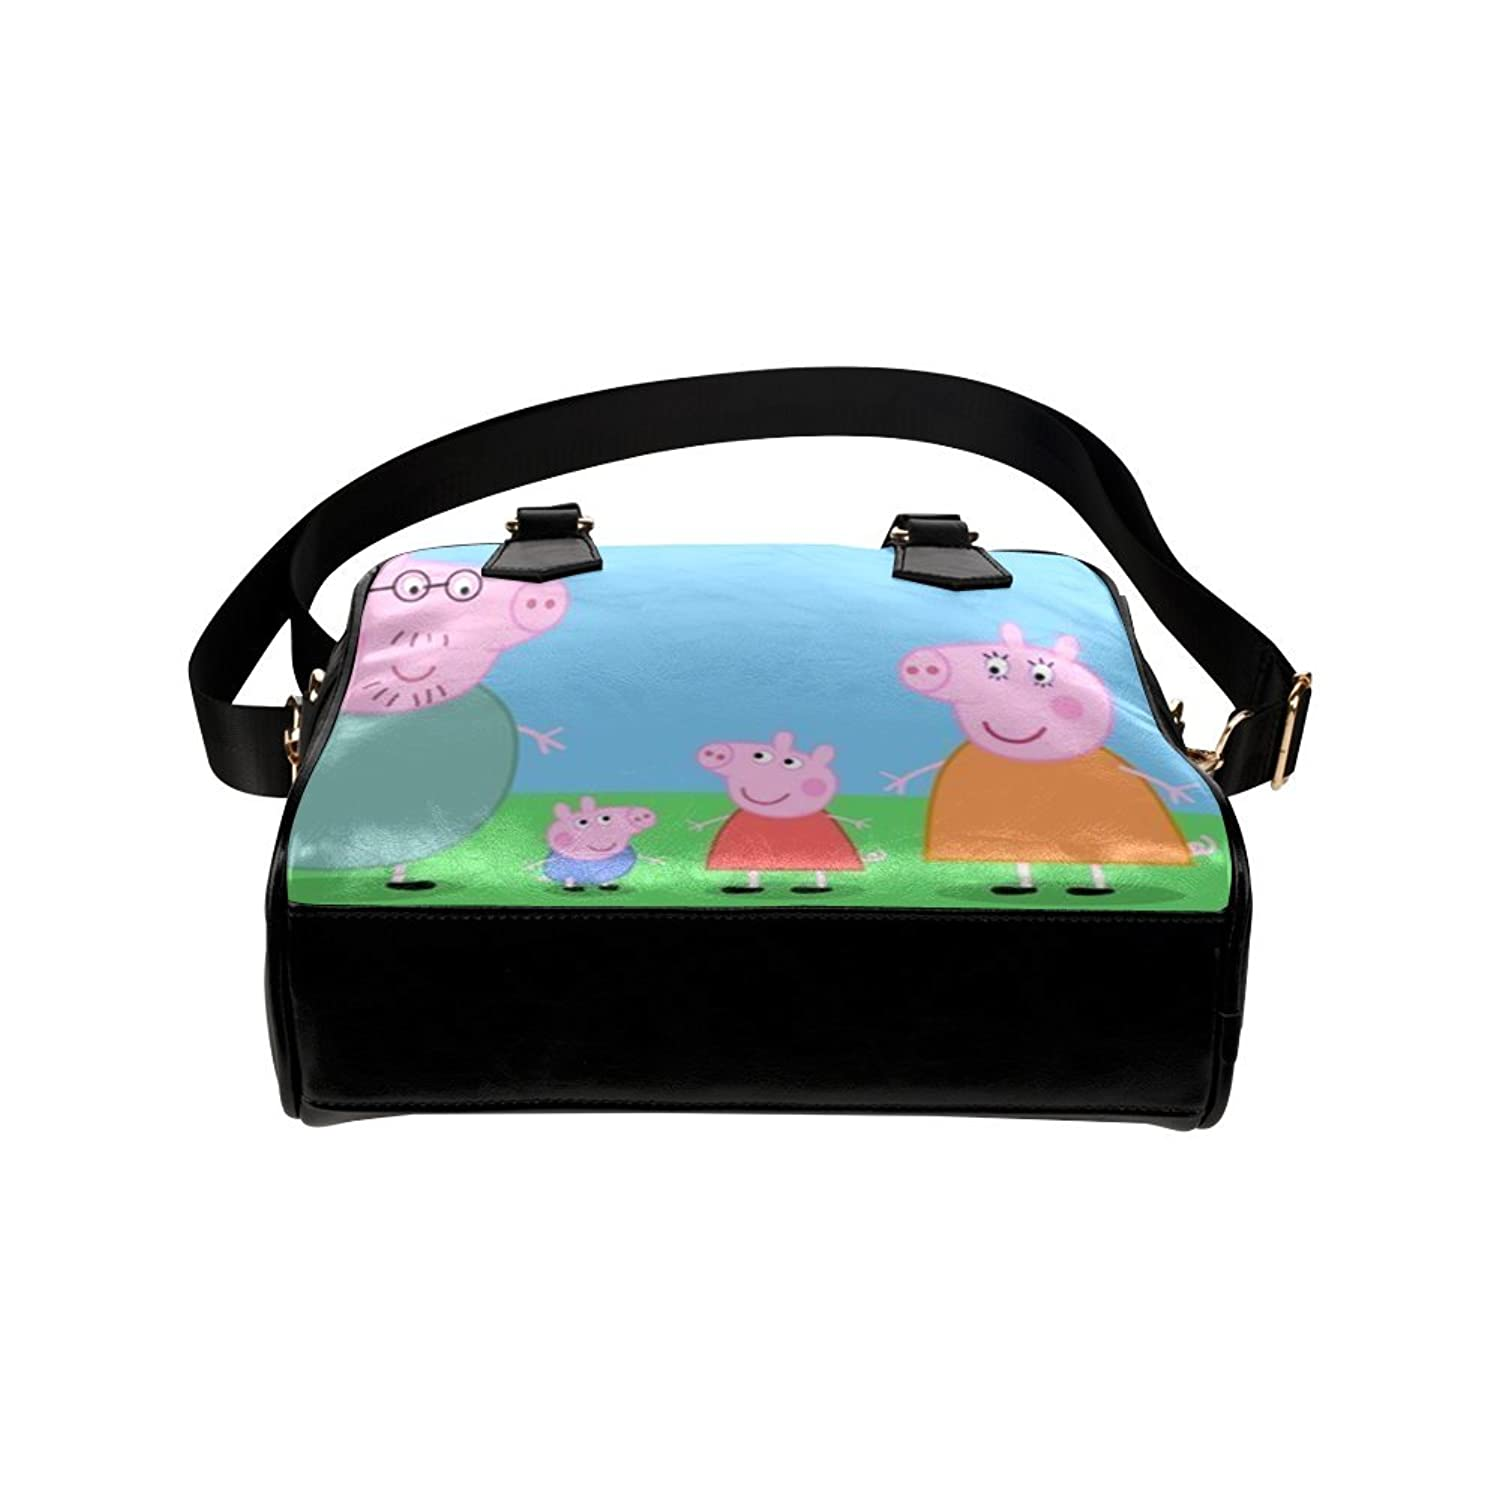 Angelinana Custom Women's Handbag Cute Peppa Pig 1 Fashion Shoulder Bag